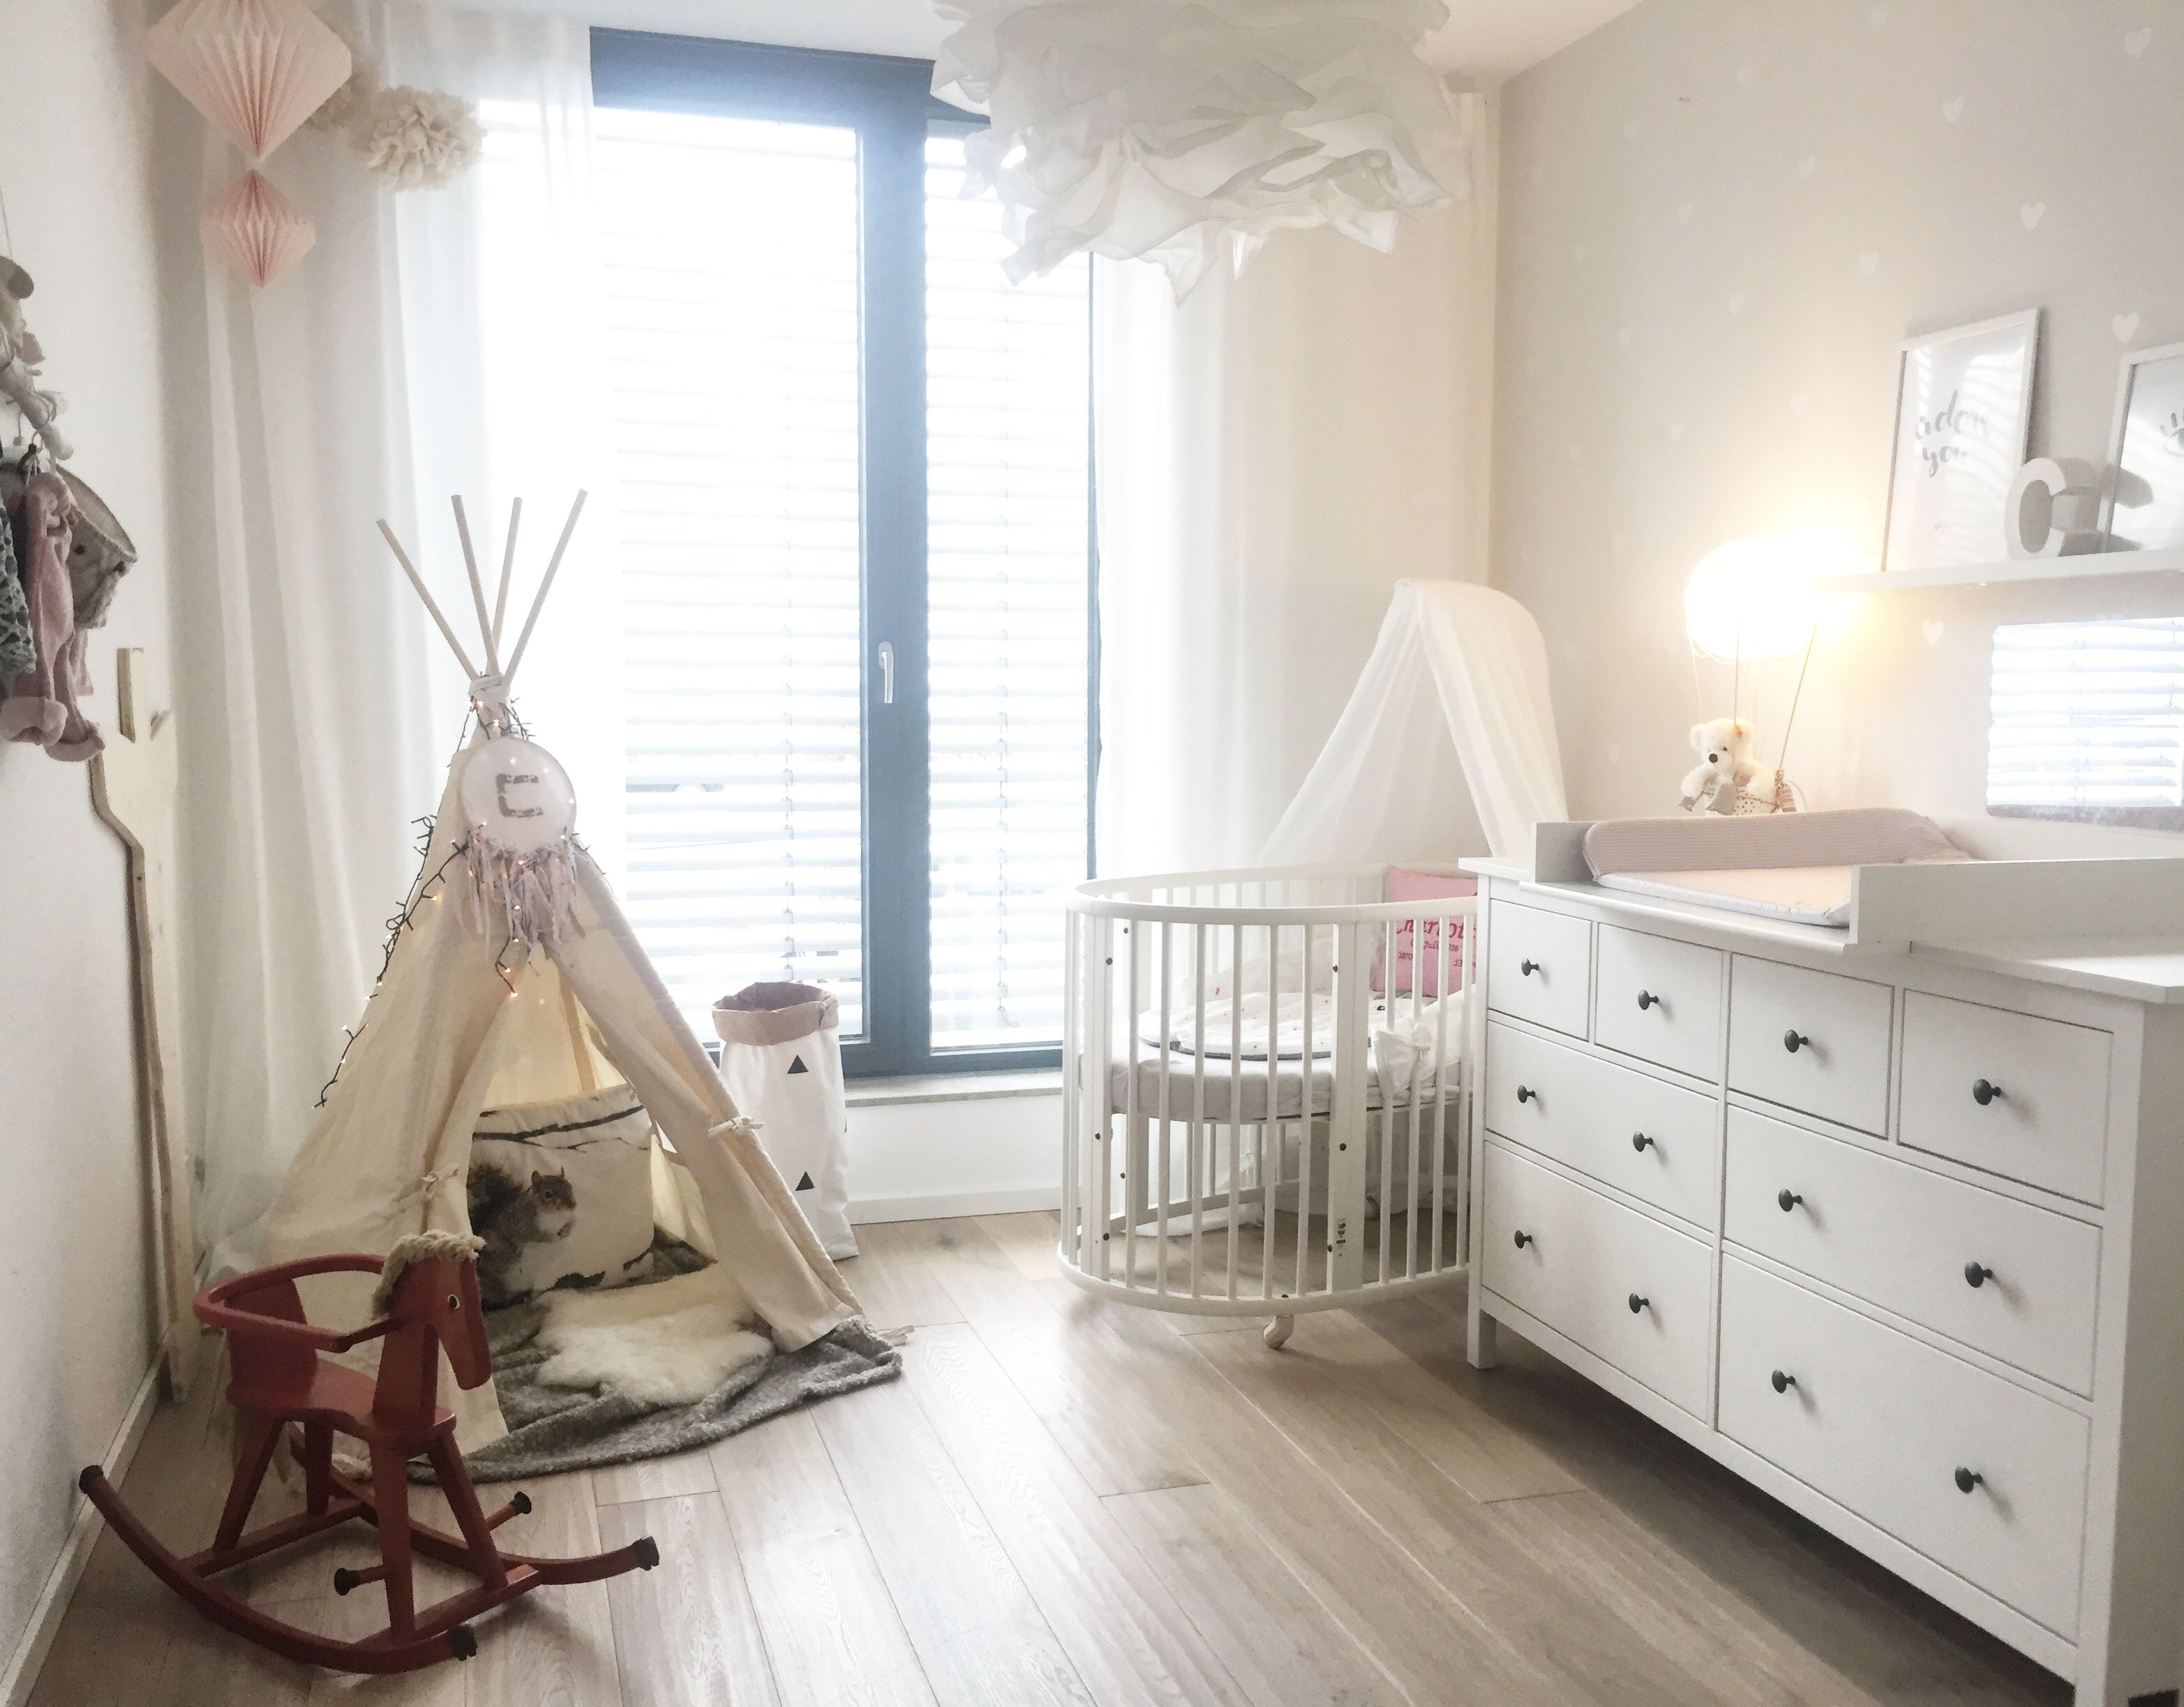 kinderzimmer babyzimmer tipi indianer ikea hemnes wickelkommode stokke ikea t a n n n y. Black Bedroom Furniture Sets. Home Design Ideas